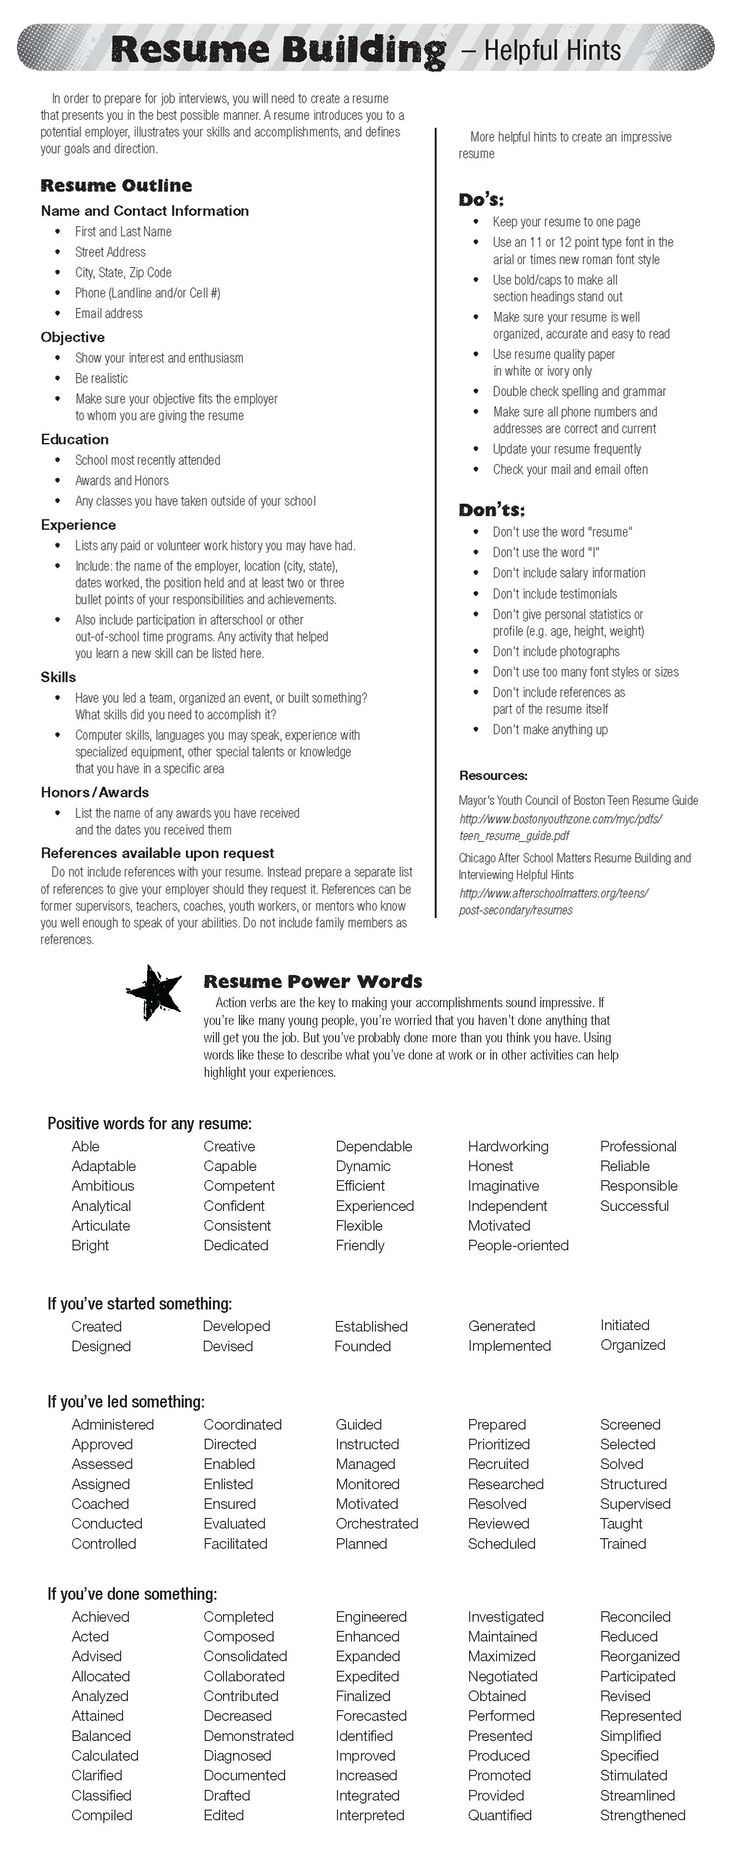 Opposenewapstandardsus  Winsome  Ideas About Resume On Pinterest  Cv Format Resume  With Goodlooking Check Out Todays Resume Building Tips Resume Resumepowerwords With Alluring Help Building A Resume Also Sample Computer Science Resume In Addition Resume Letterhead And Bartending Resumes As Well As What Is Objective On A Resume Additionally Resume Writer Reviews From Pinterestcom With Opposenewapstandardsus  Goodlooking  Ideas About Resume On Pinterest  Cv Format Resume  With Alluring Check Out Todays Resume Building Tips Resume Resumepowerwords And Winsome Help Building A Resume Also Sample Computer Science Resume In Addition Resume Letterhead From Pinterestcom